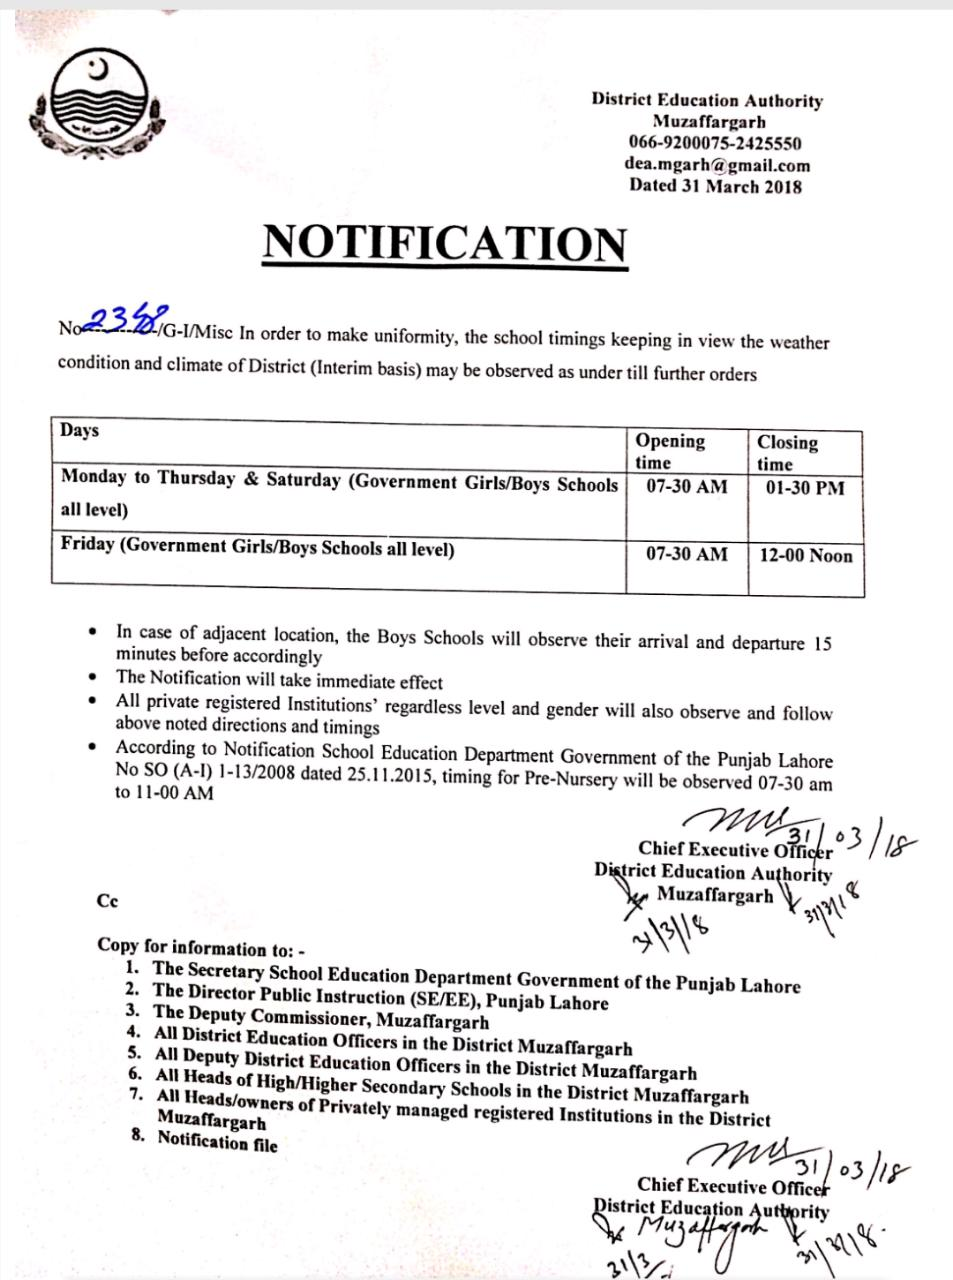 District Muzaffargarh School Timings 2018